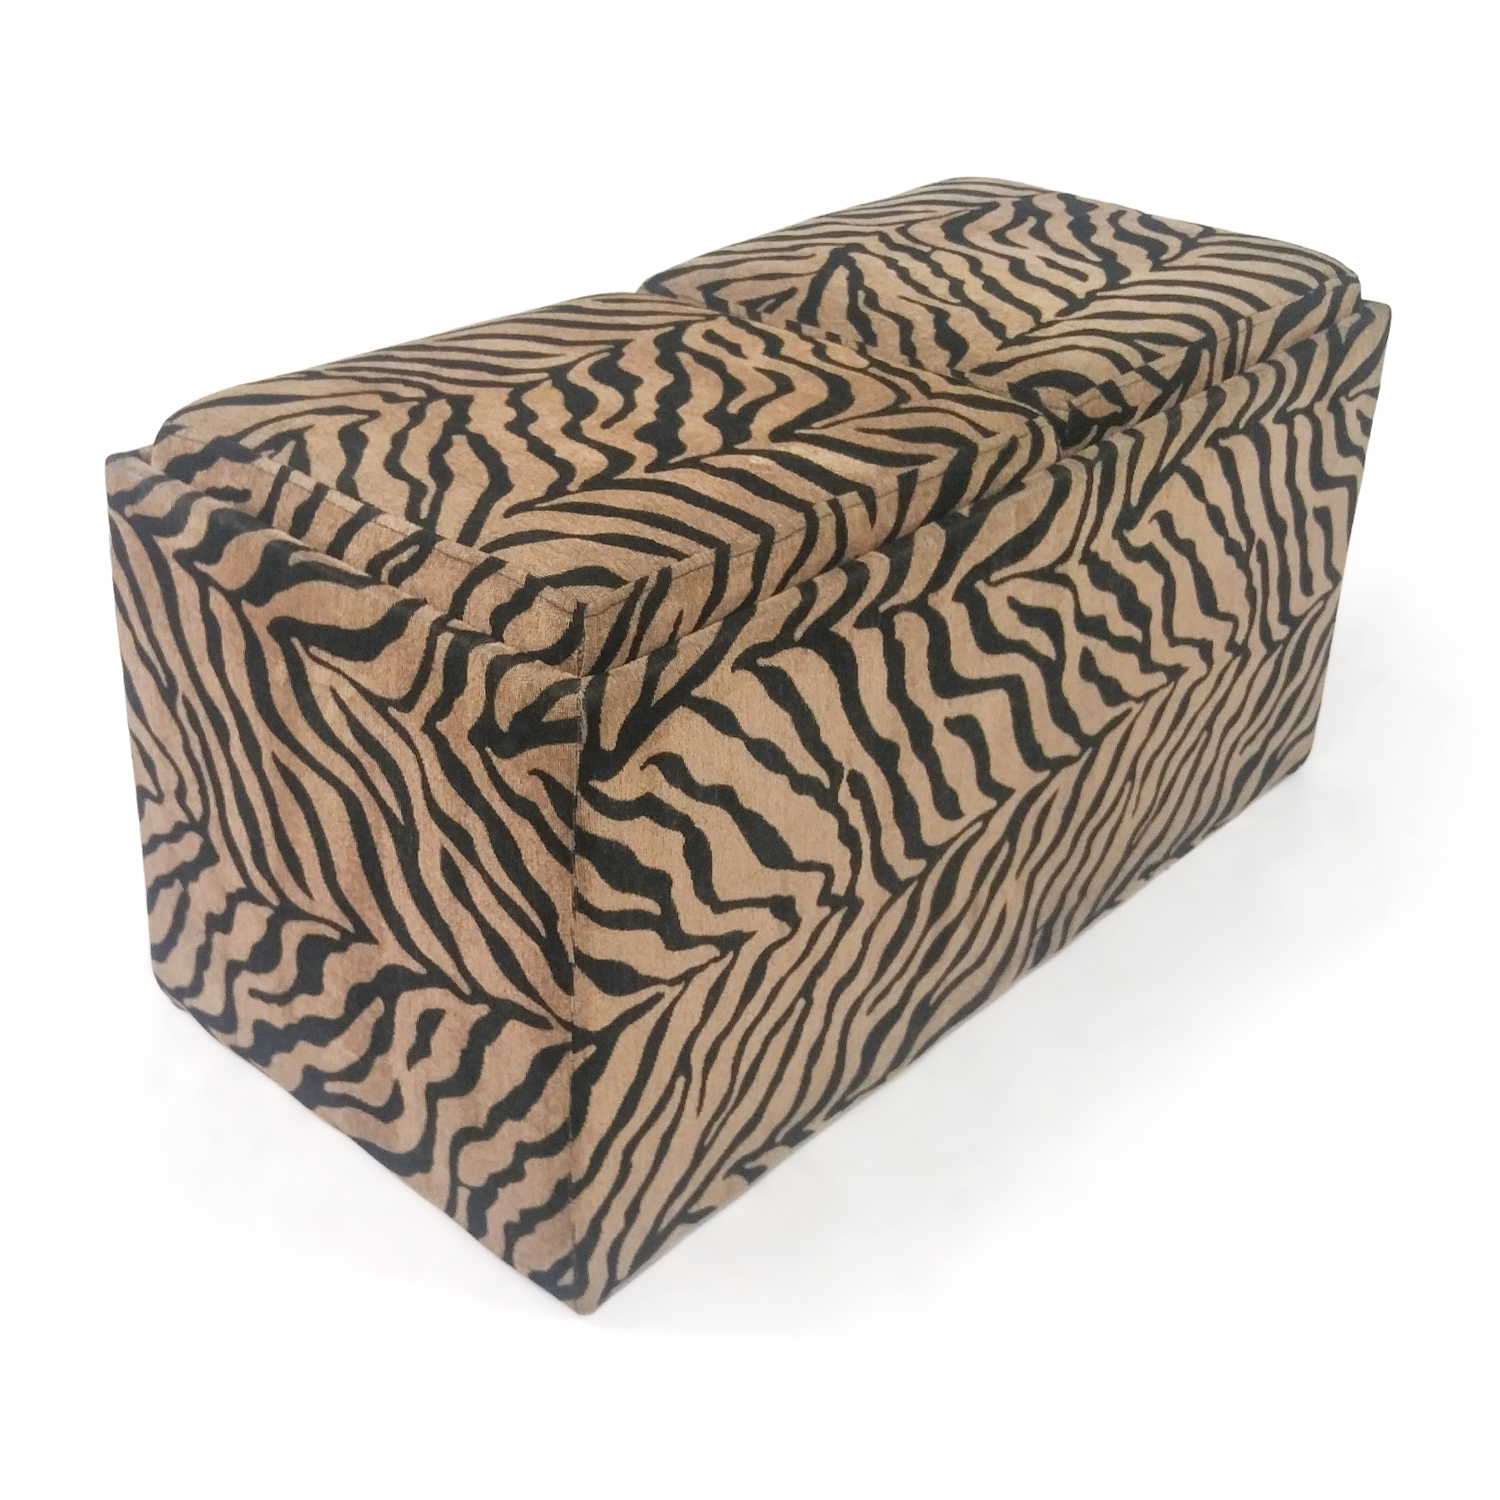 Zebra Ottomans For Sale Futons Louisville Ky And Best